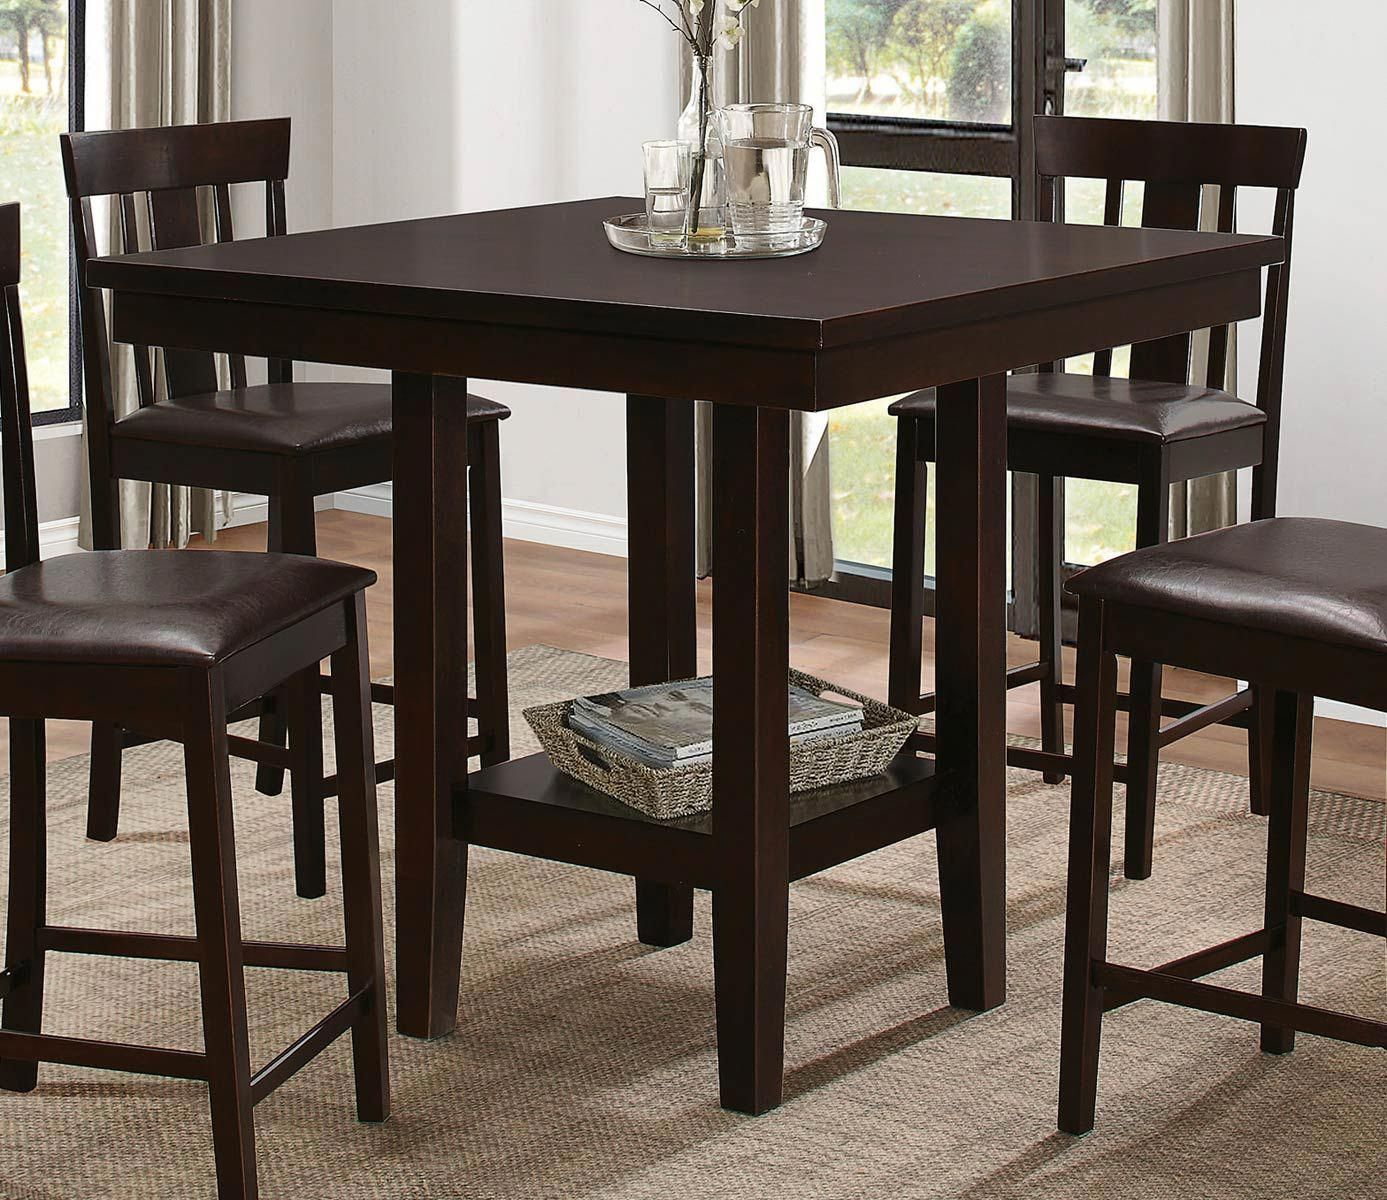 Figure Out More Information On Counter Height Table Square